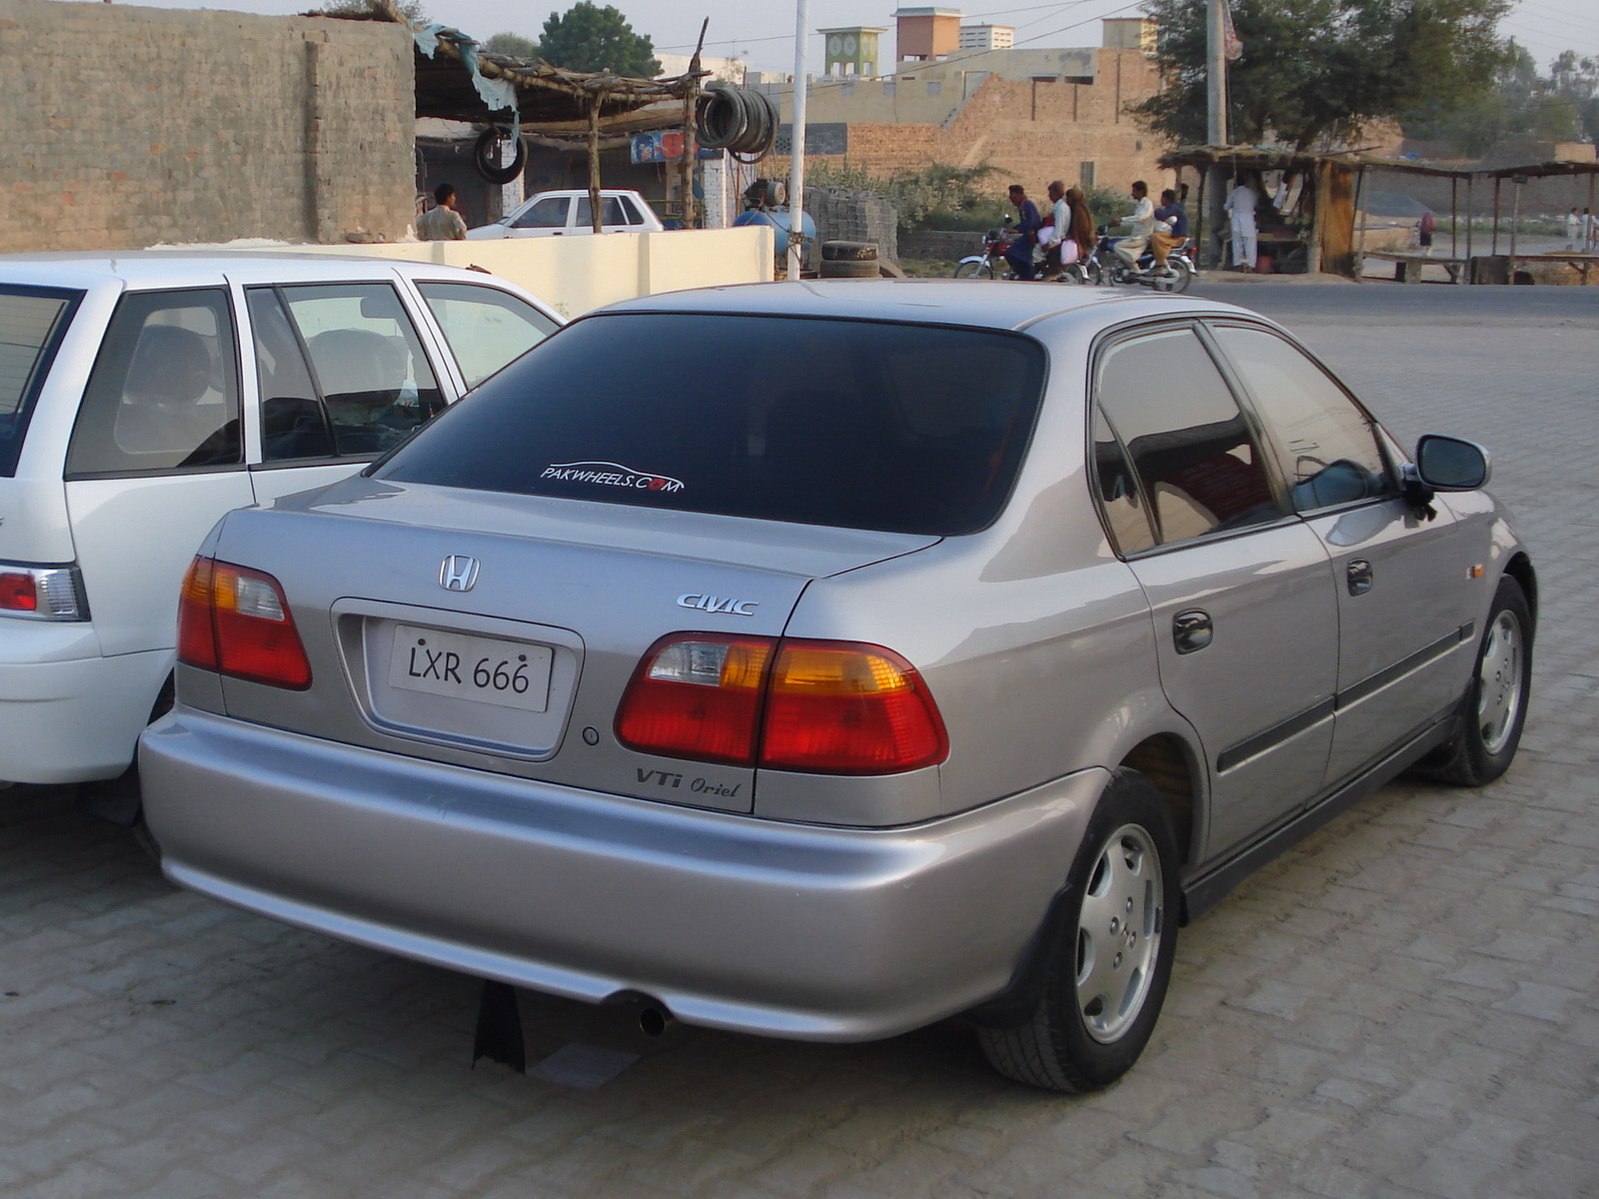 2000 honda civic information and photos momentcar for Honda car 2000